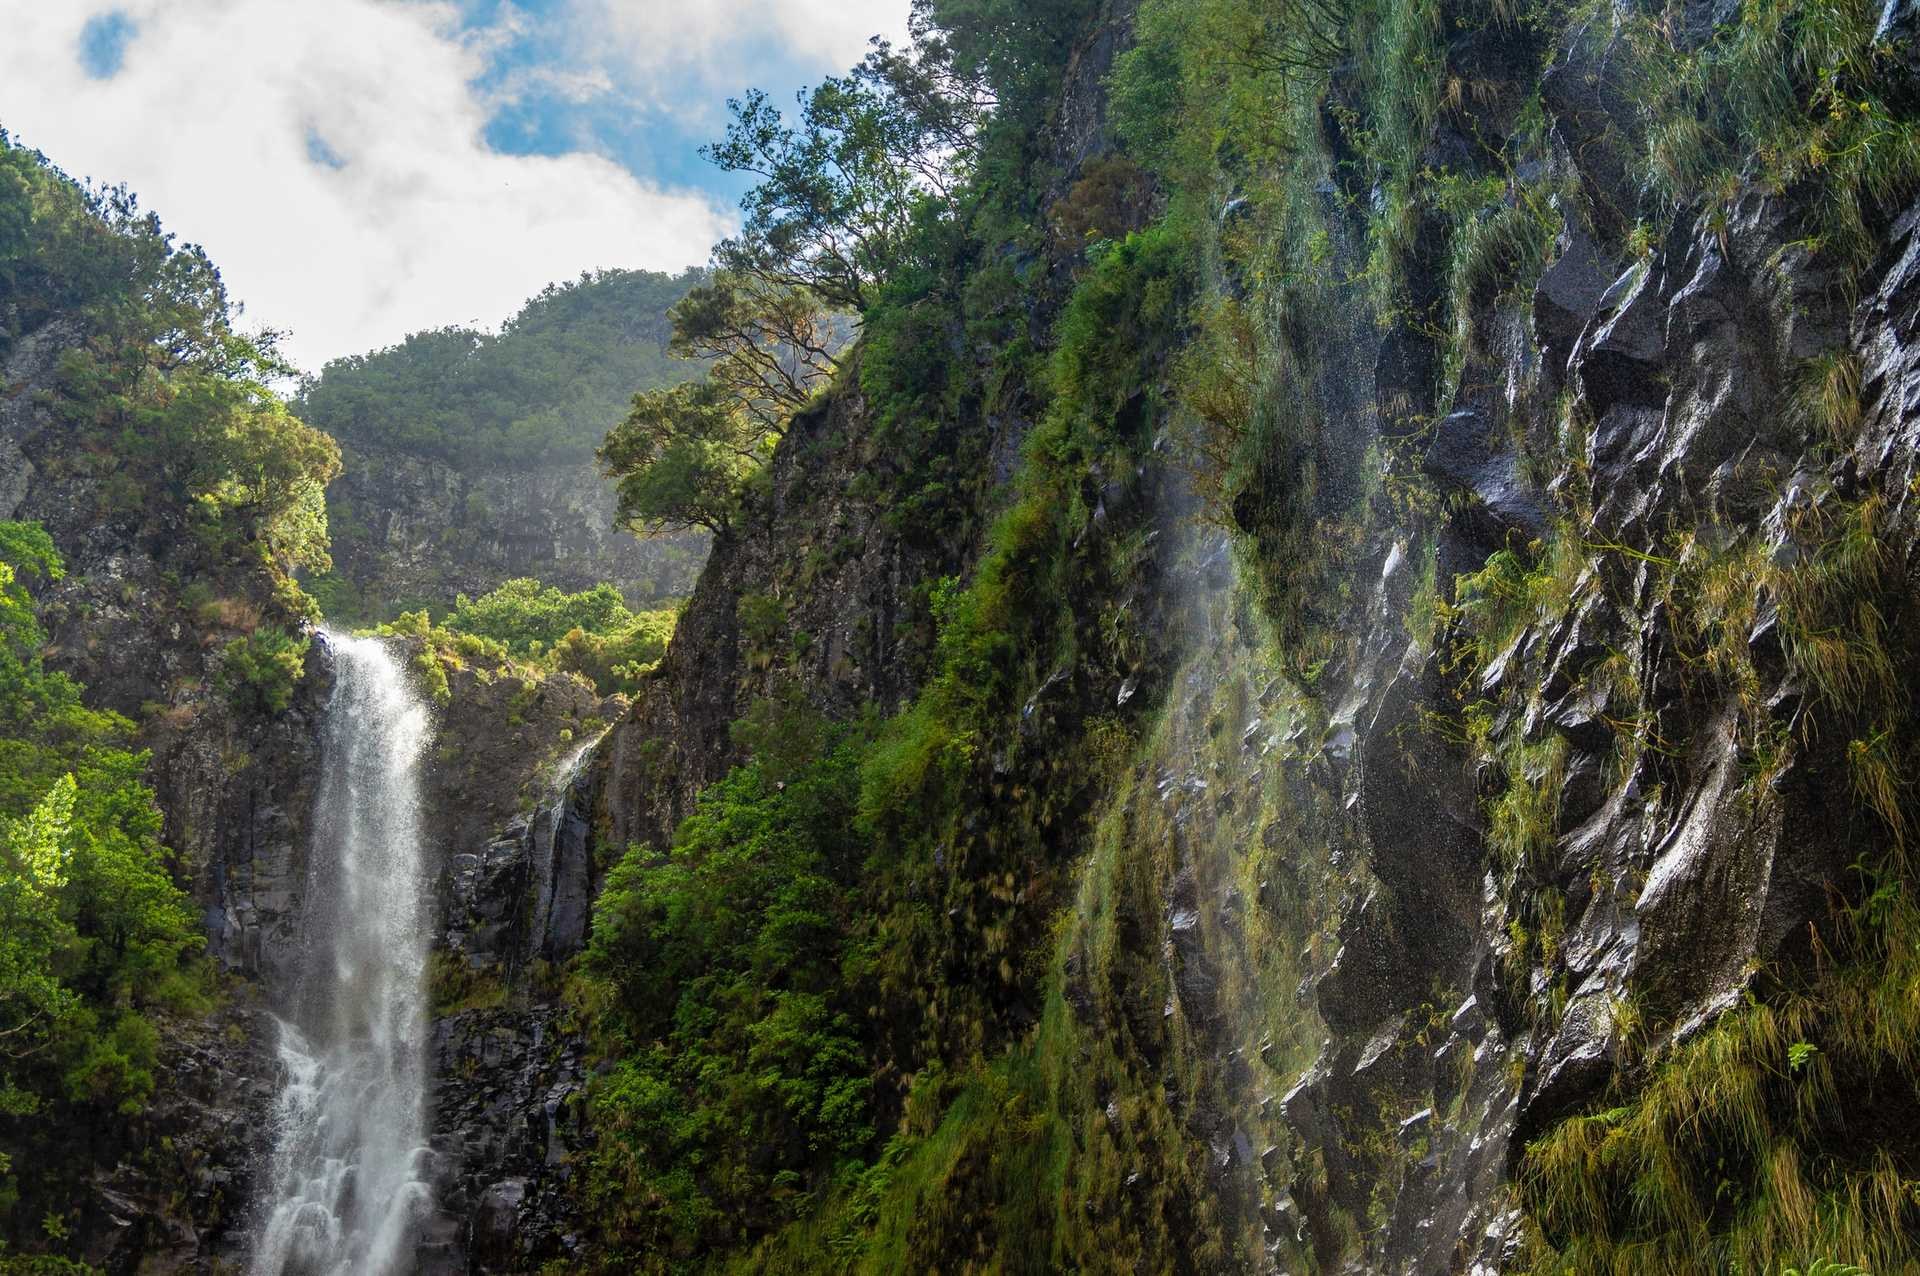 Waterfall in the forest, Madeira